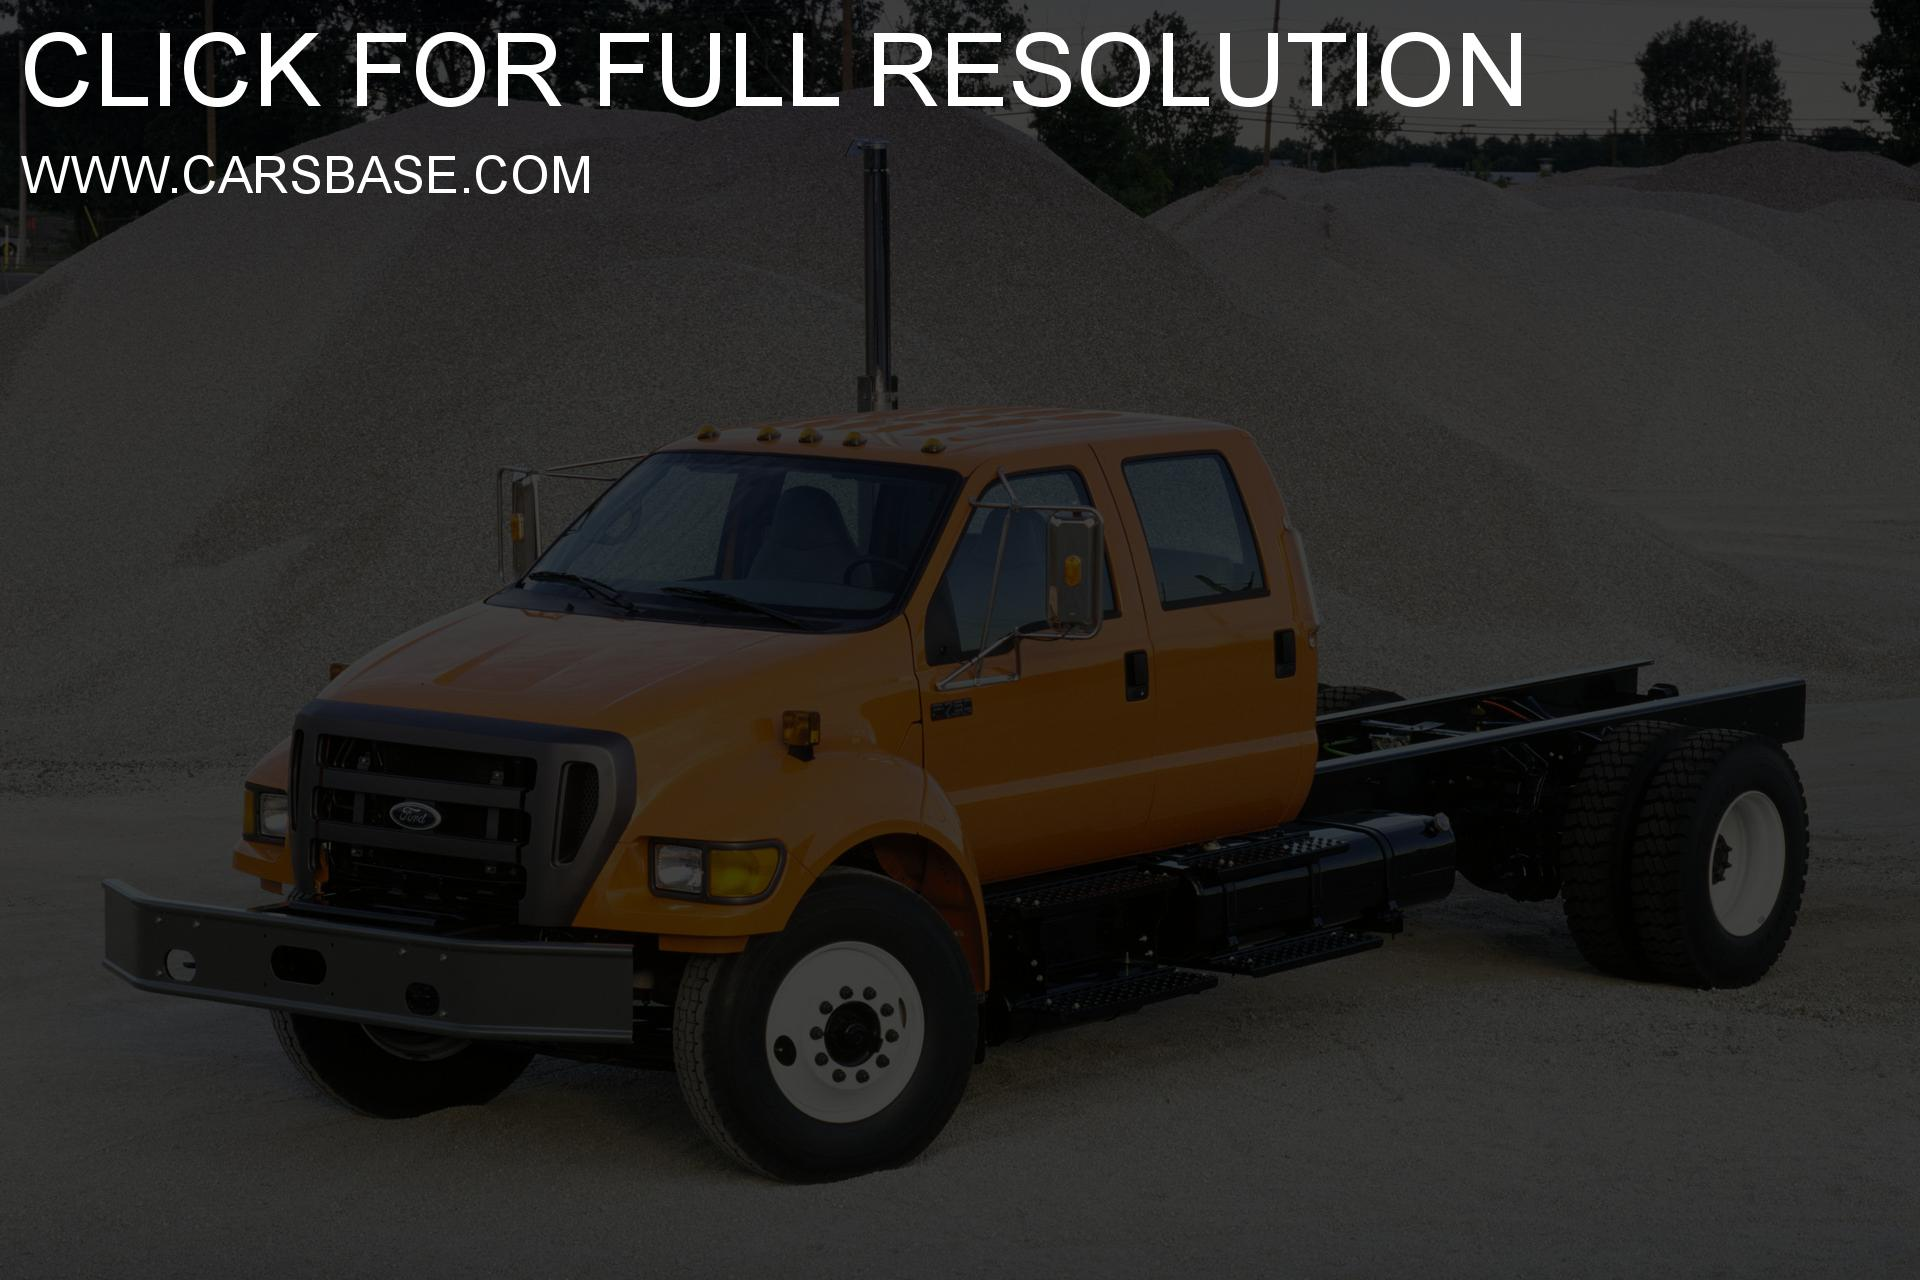 Ford f-750 photo - 1